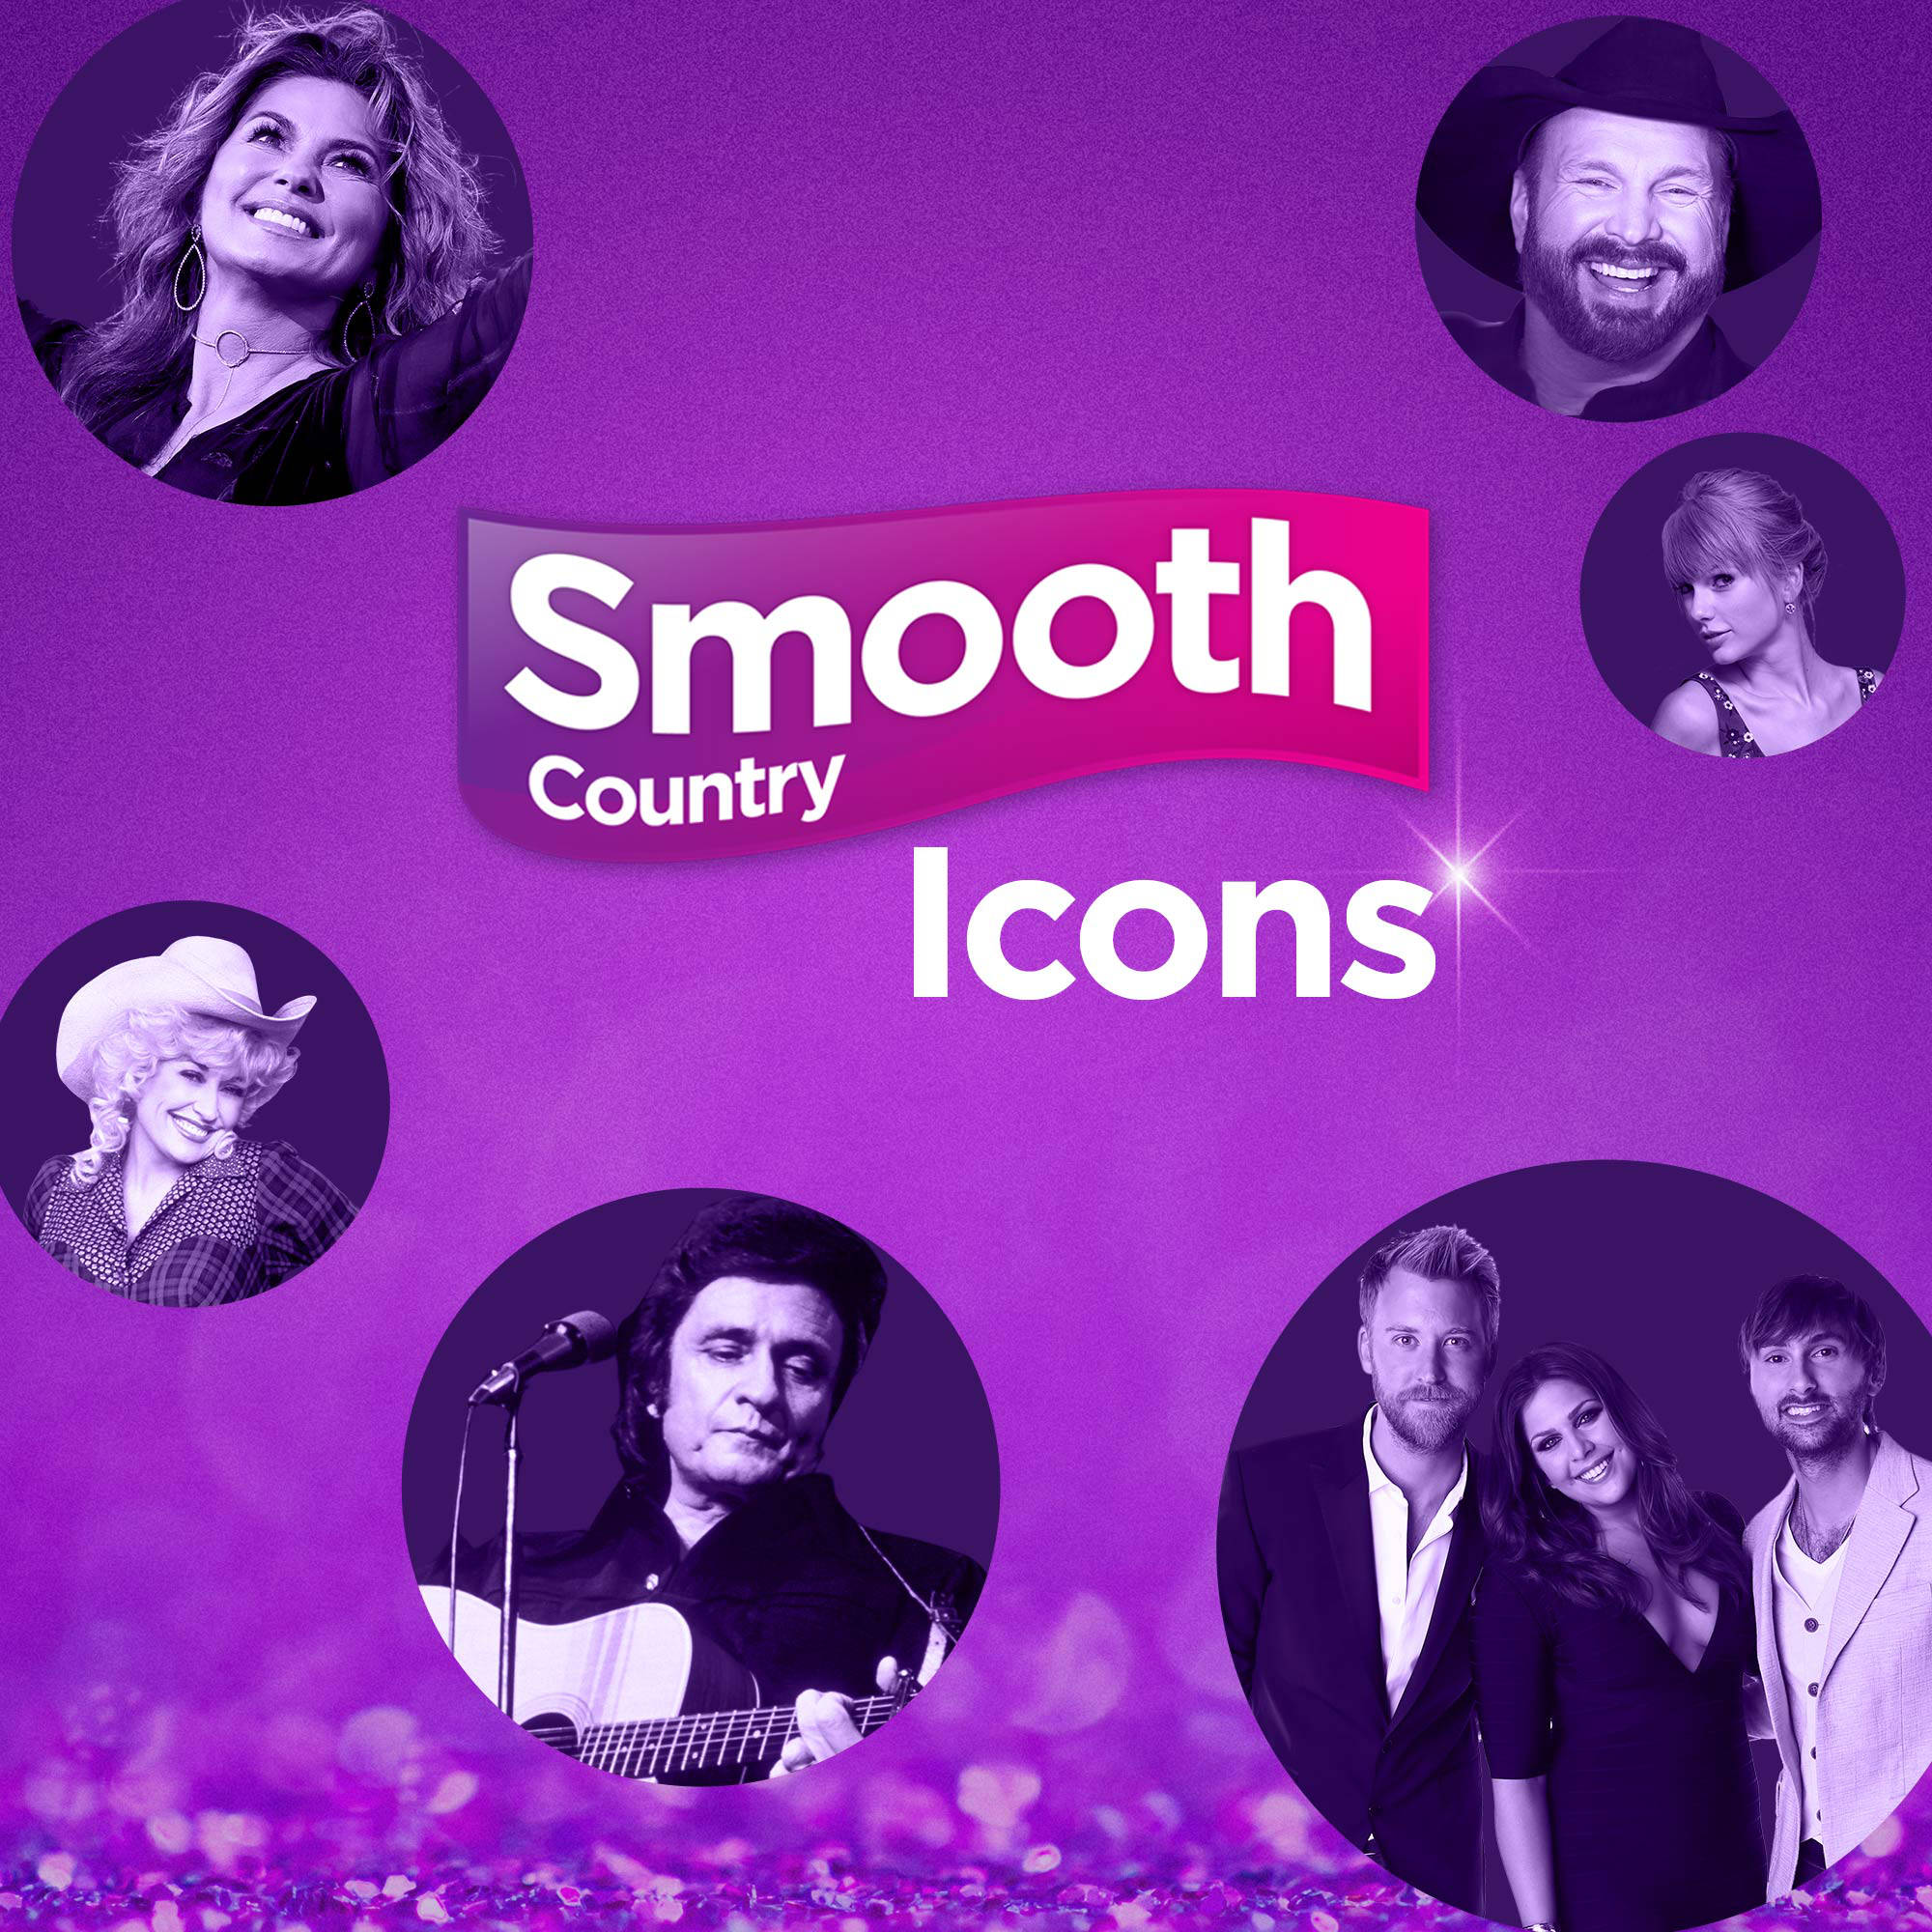 Smooth Country Icons image